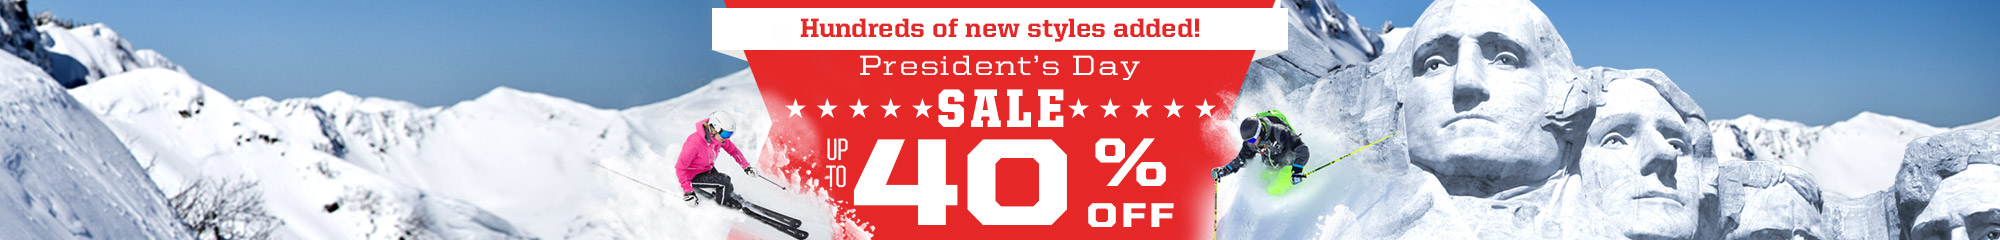 Presidents Day Sale - Save up to 40% off